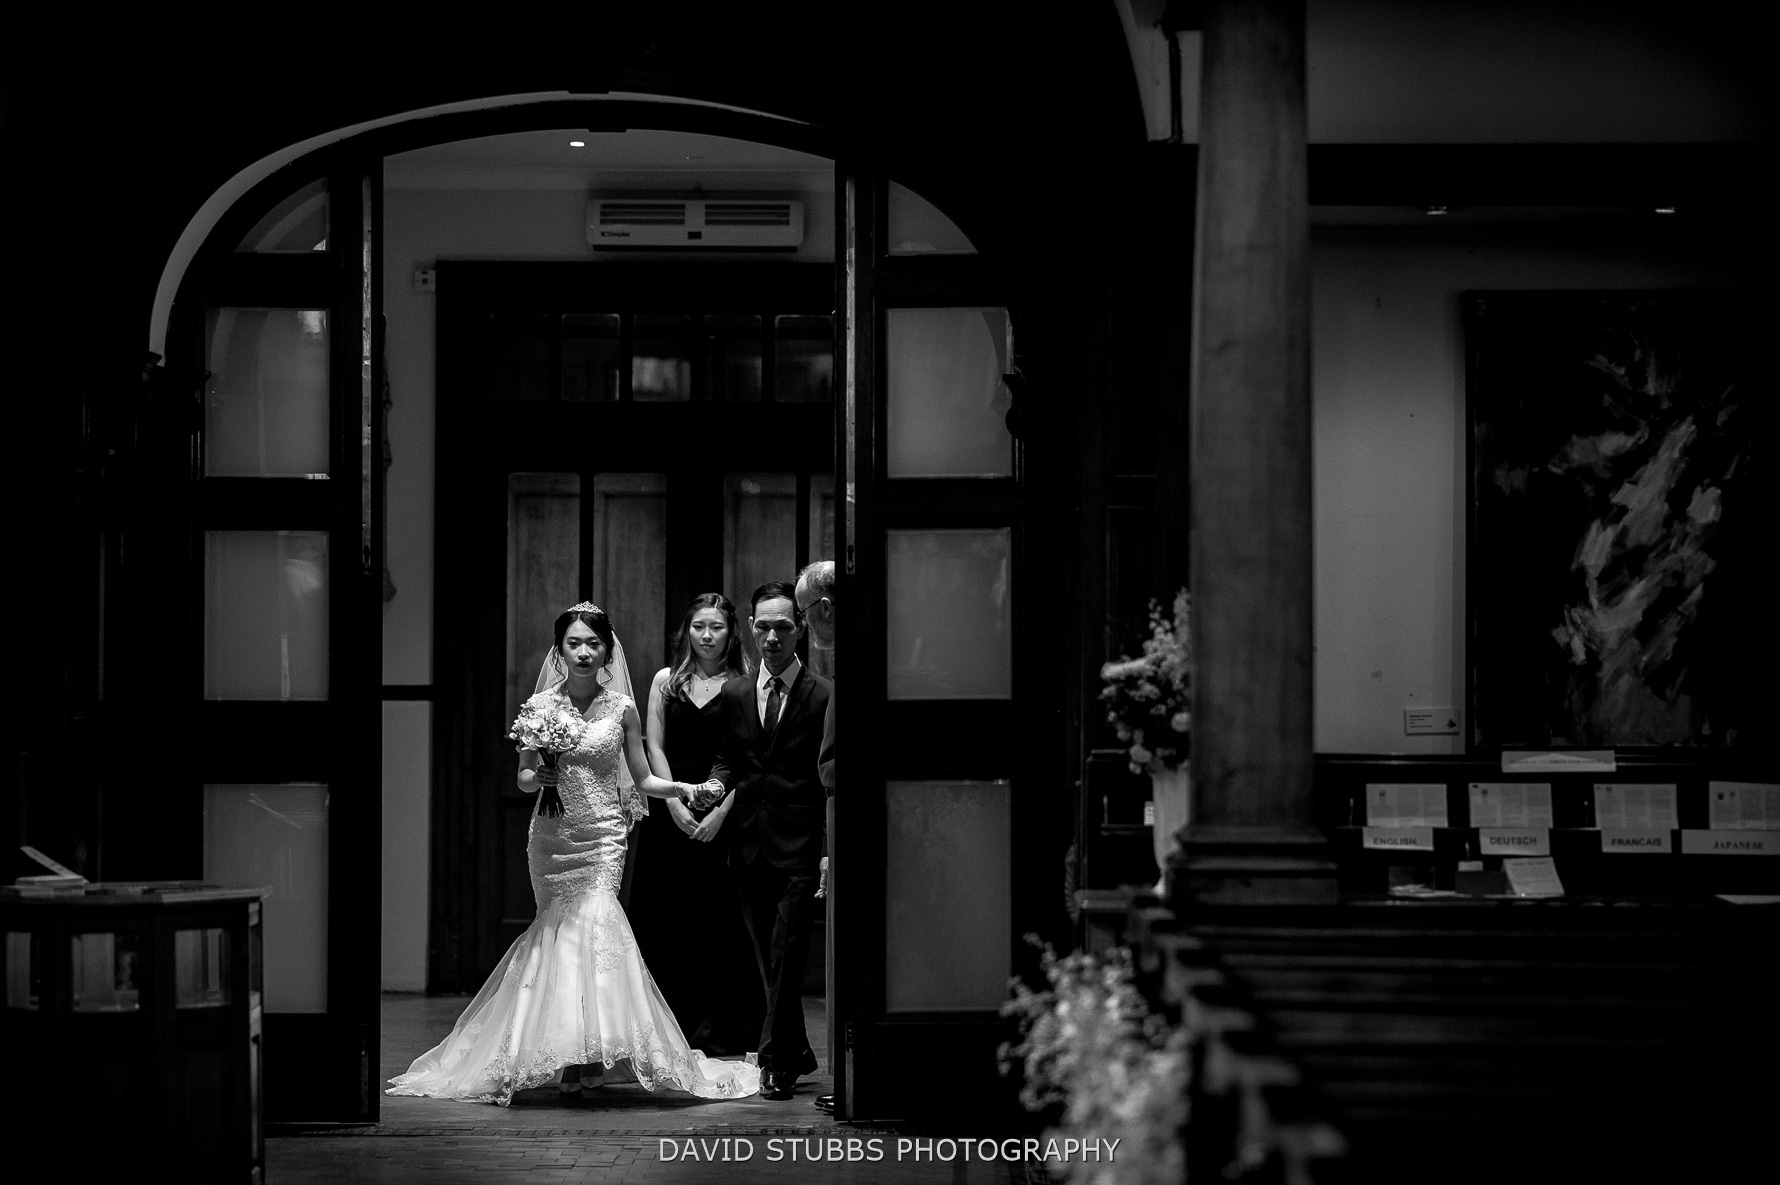 entering to say their vows